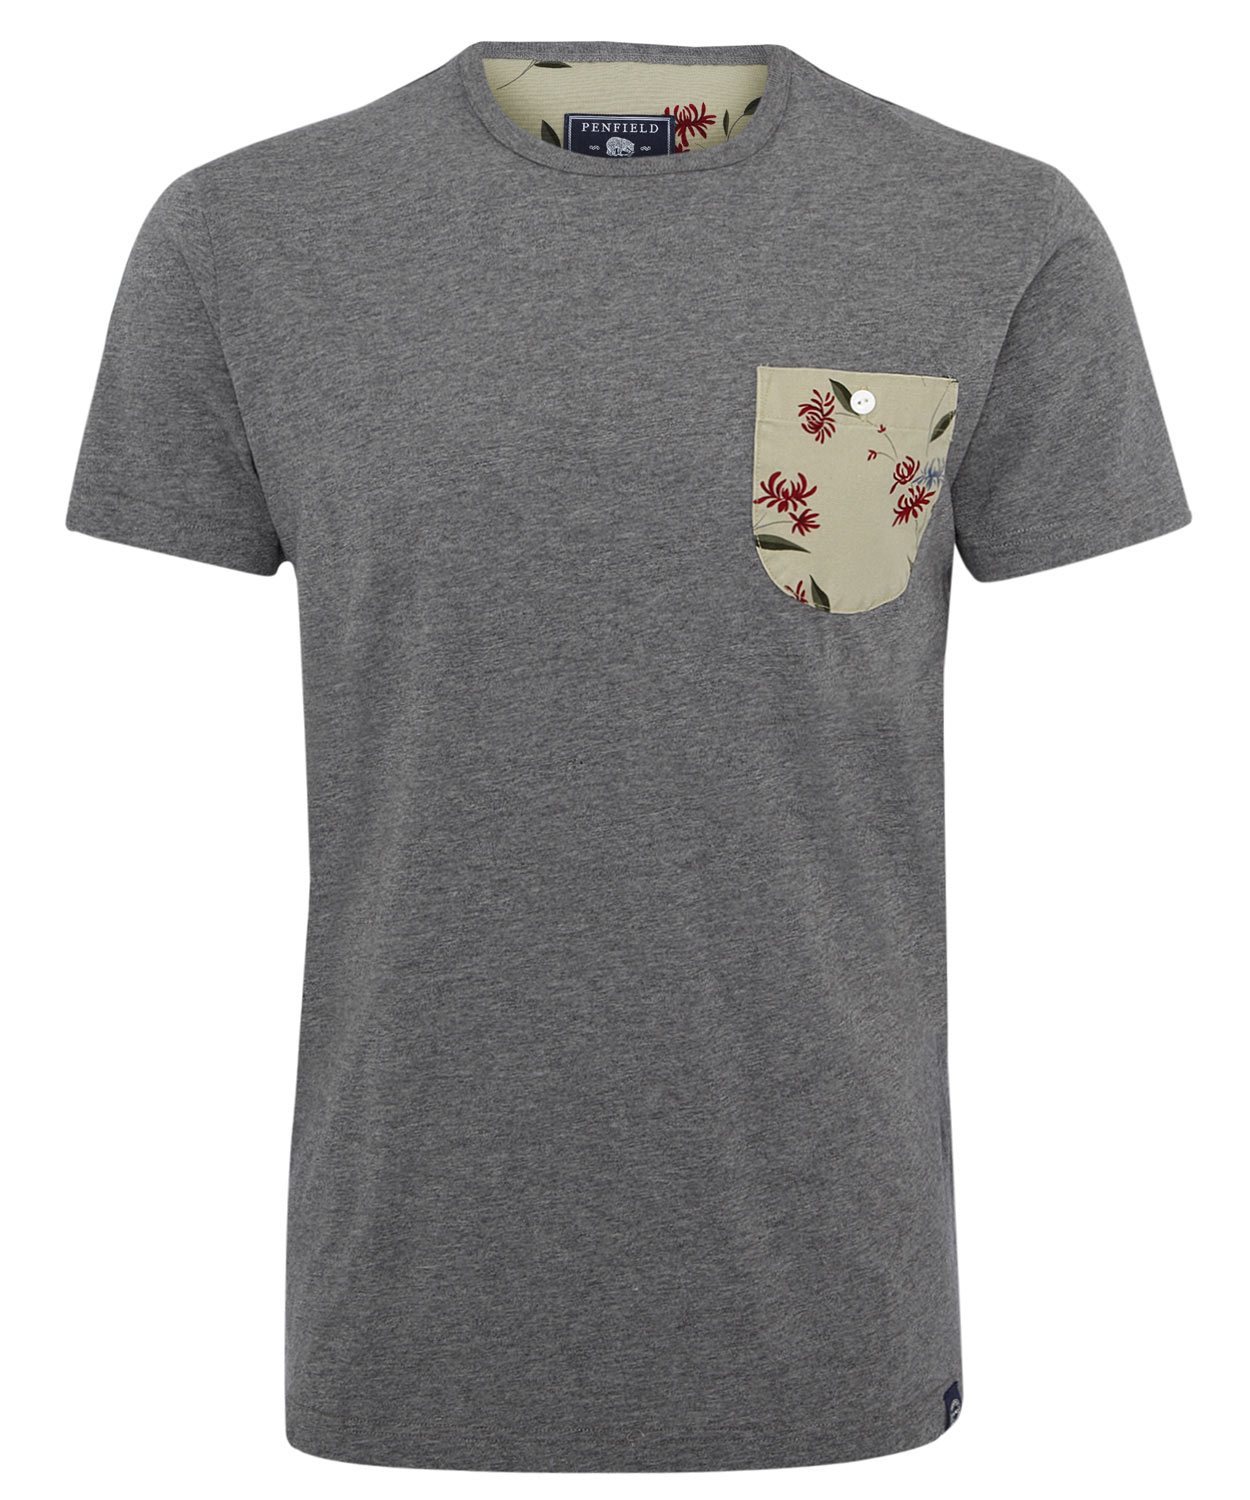 Penfield grey roseland floral print pocket t shirt in gray for Pocket t shirt printing